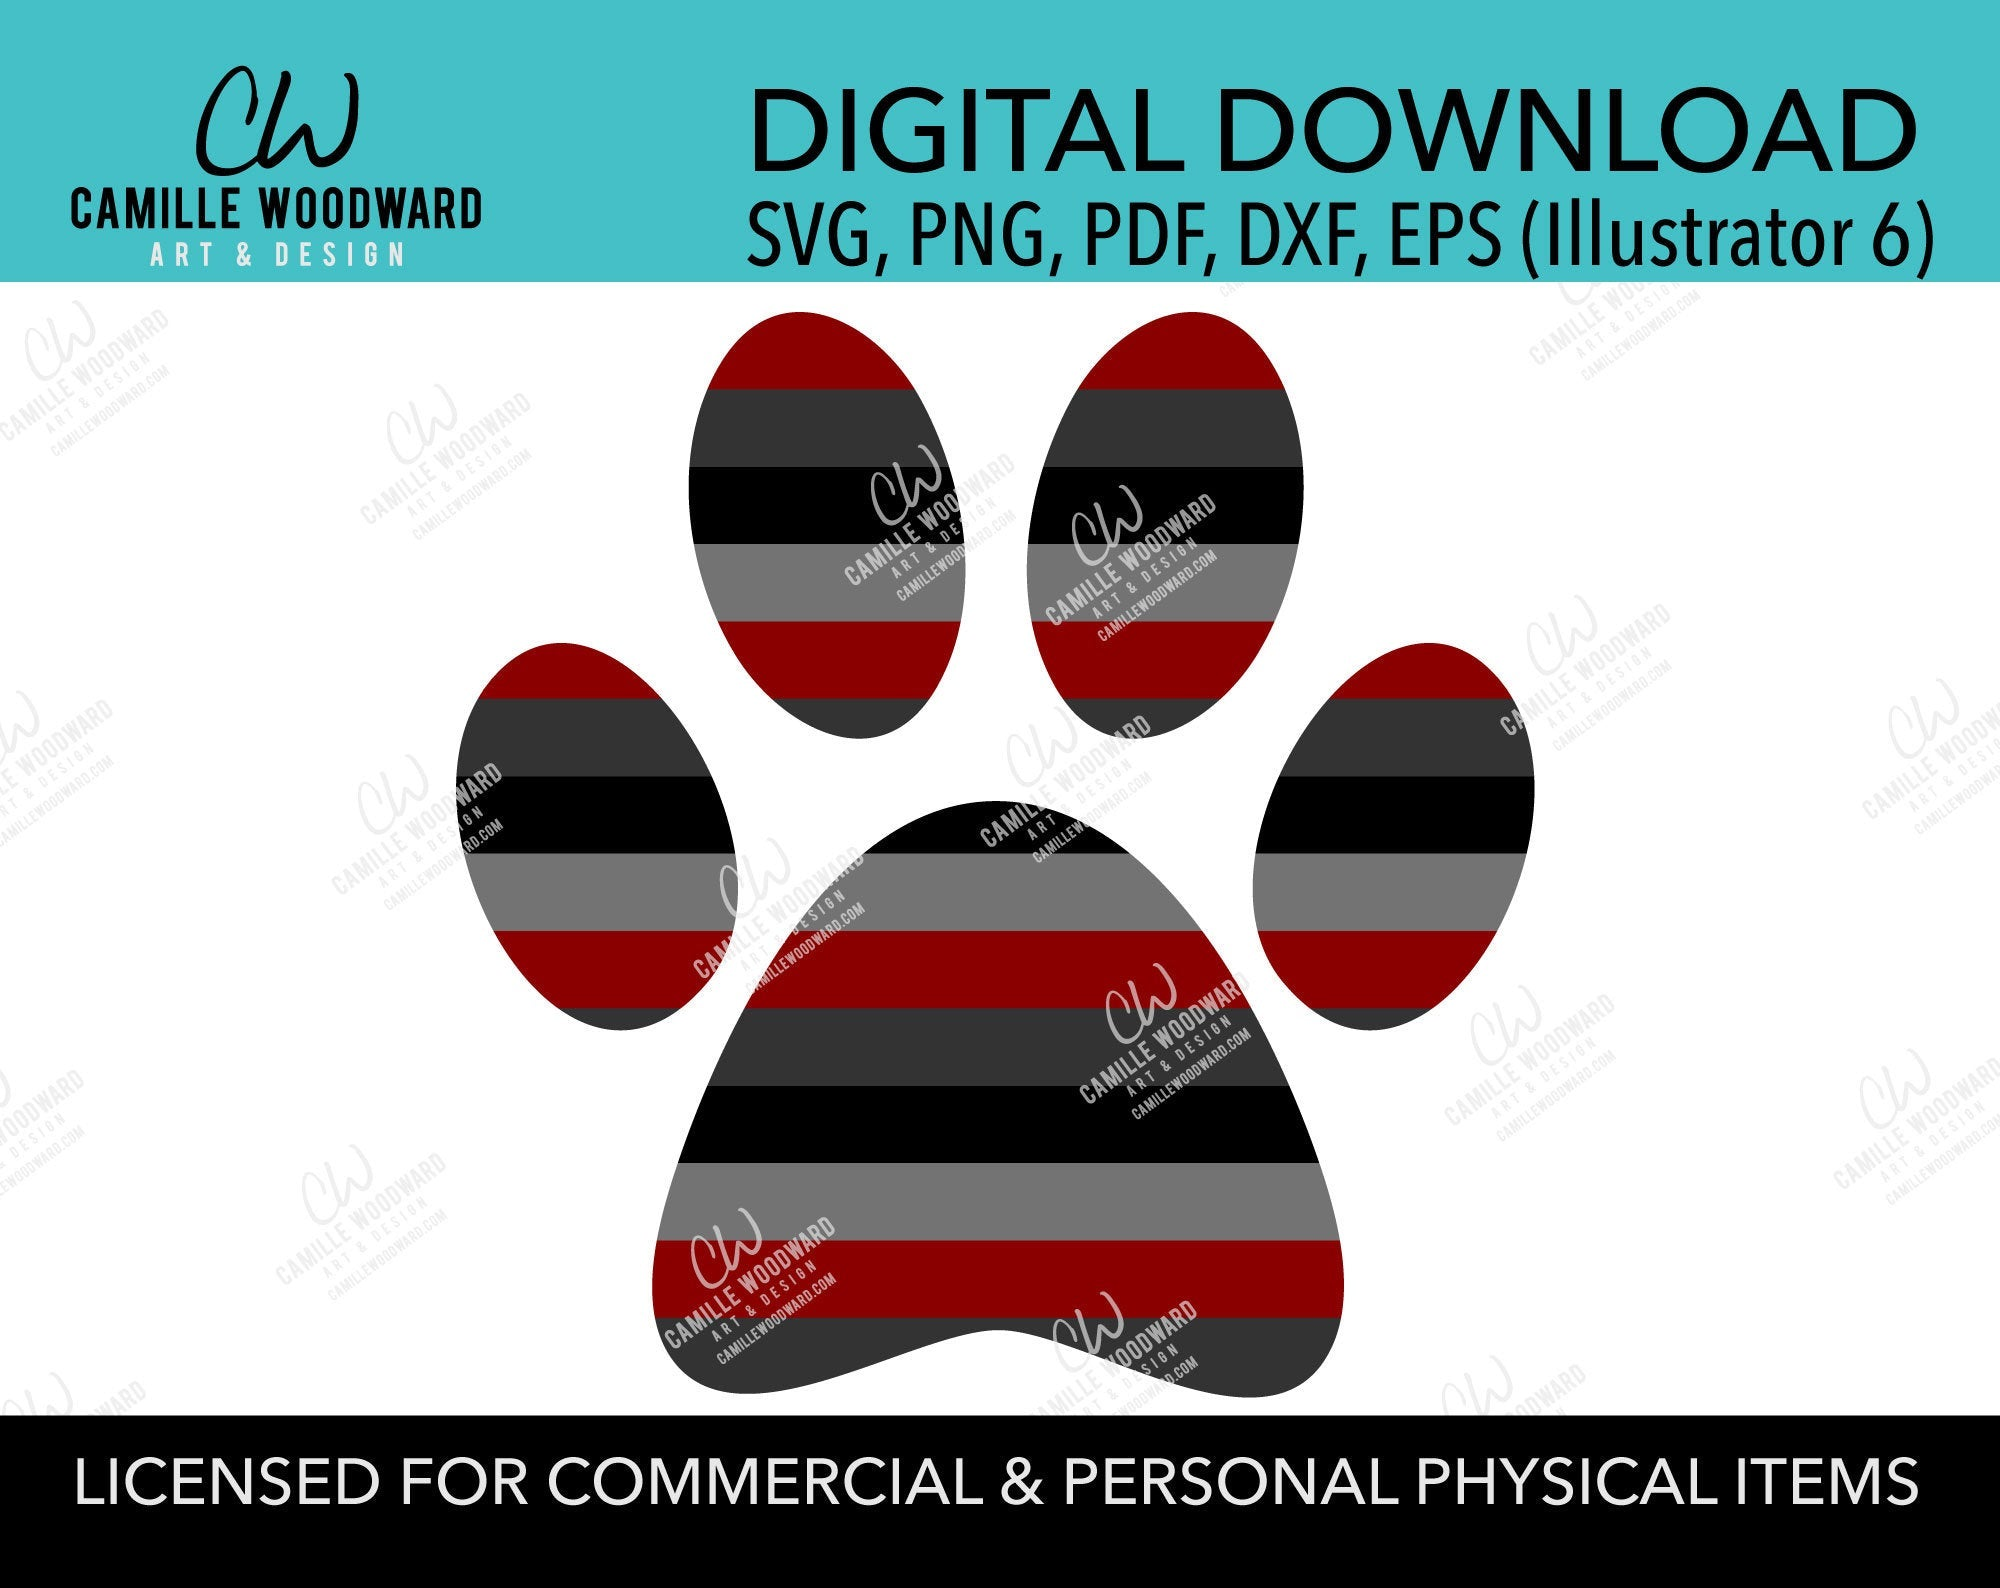 Dog Paw Print with Stripes in Maroon Red, Black Gray, SVG, EPS, PNG - Sublimation Digital Download Transparent